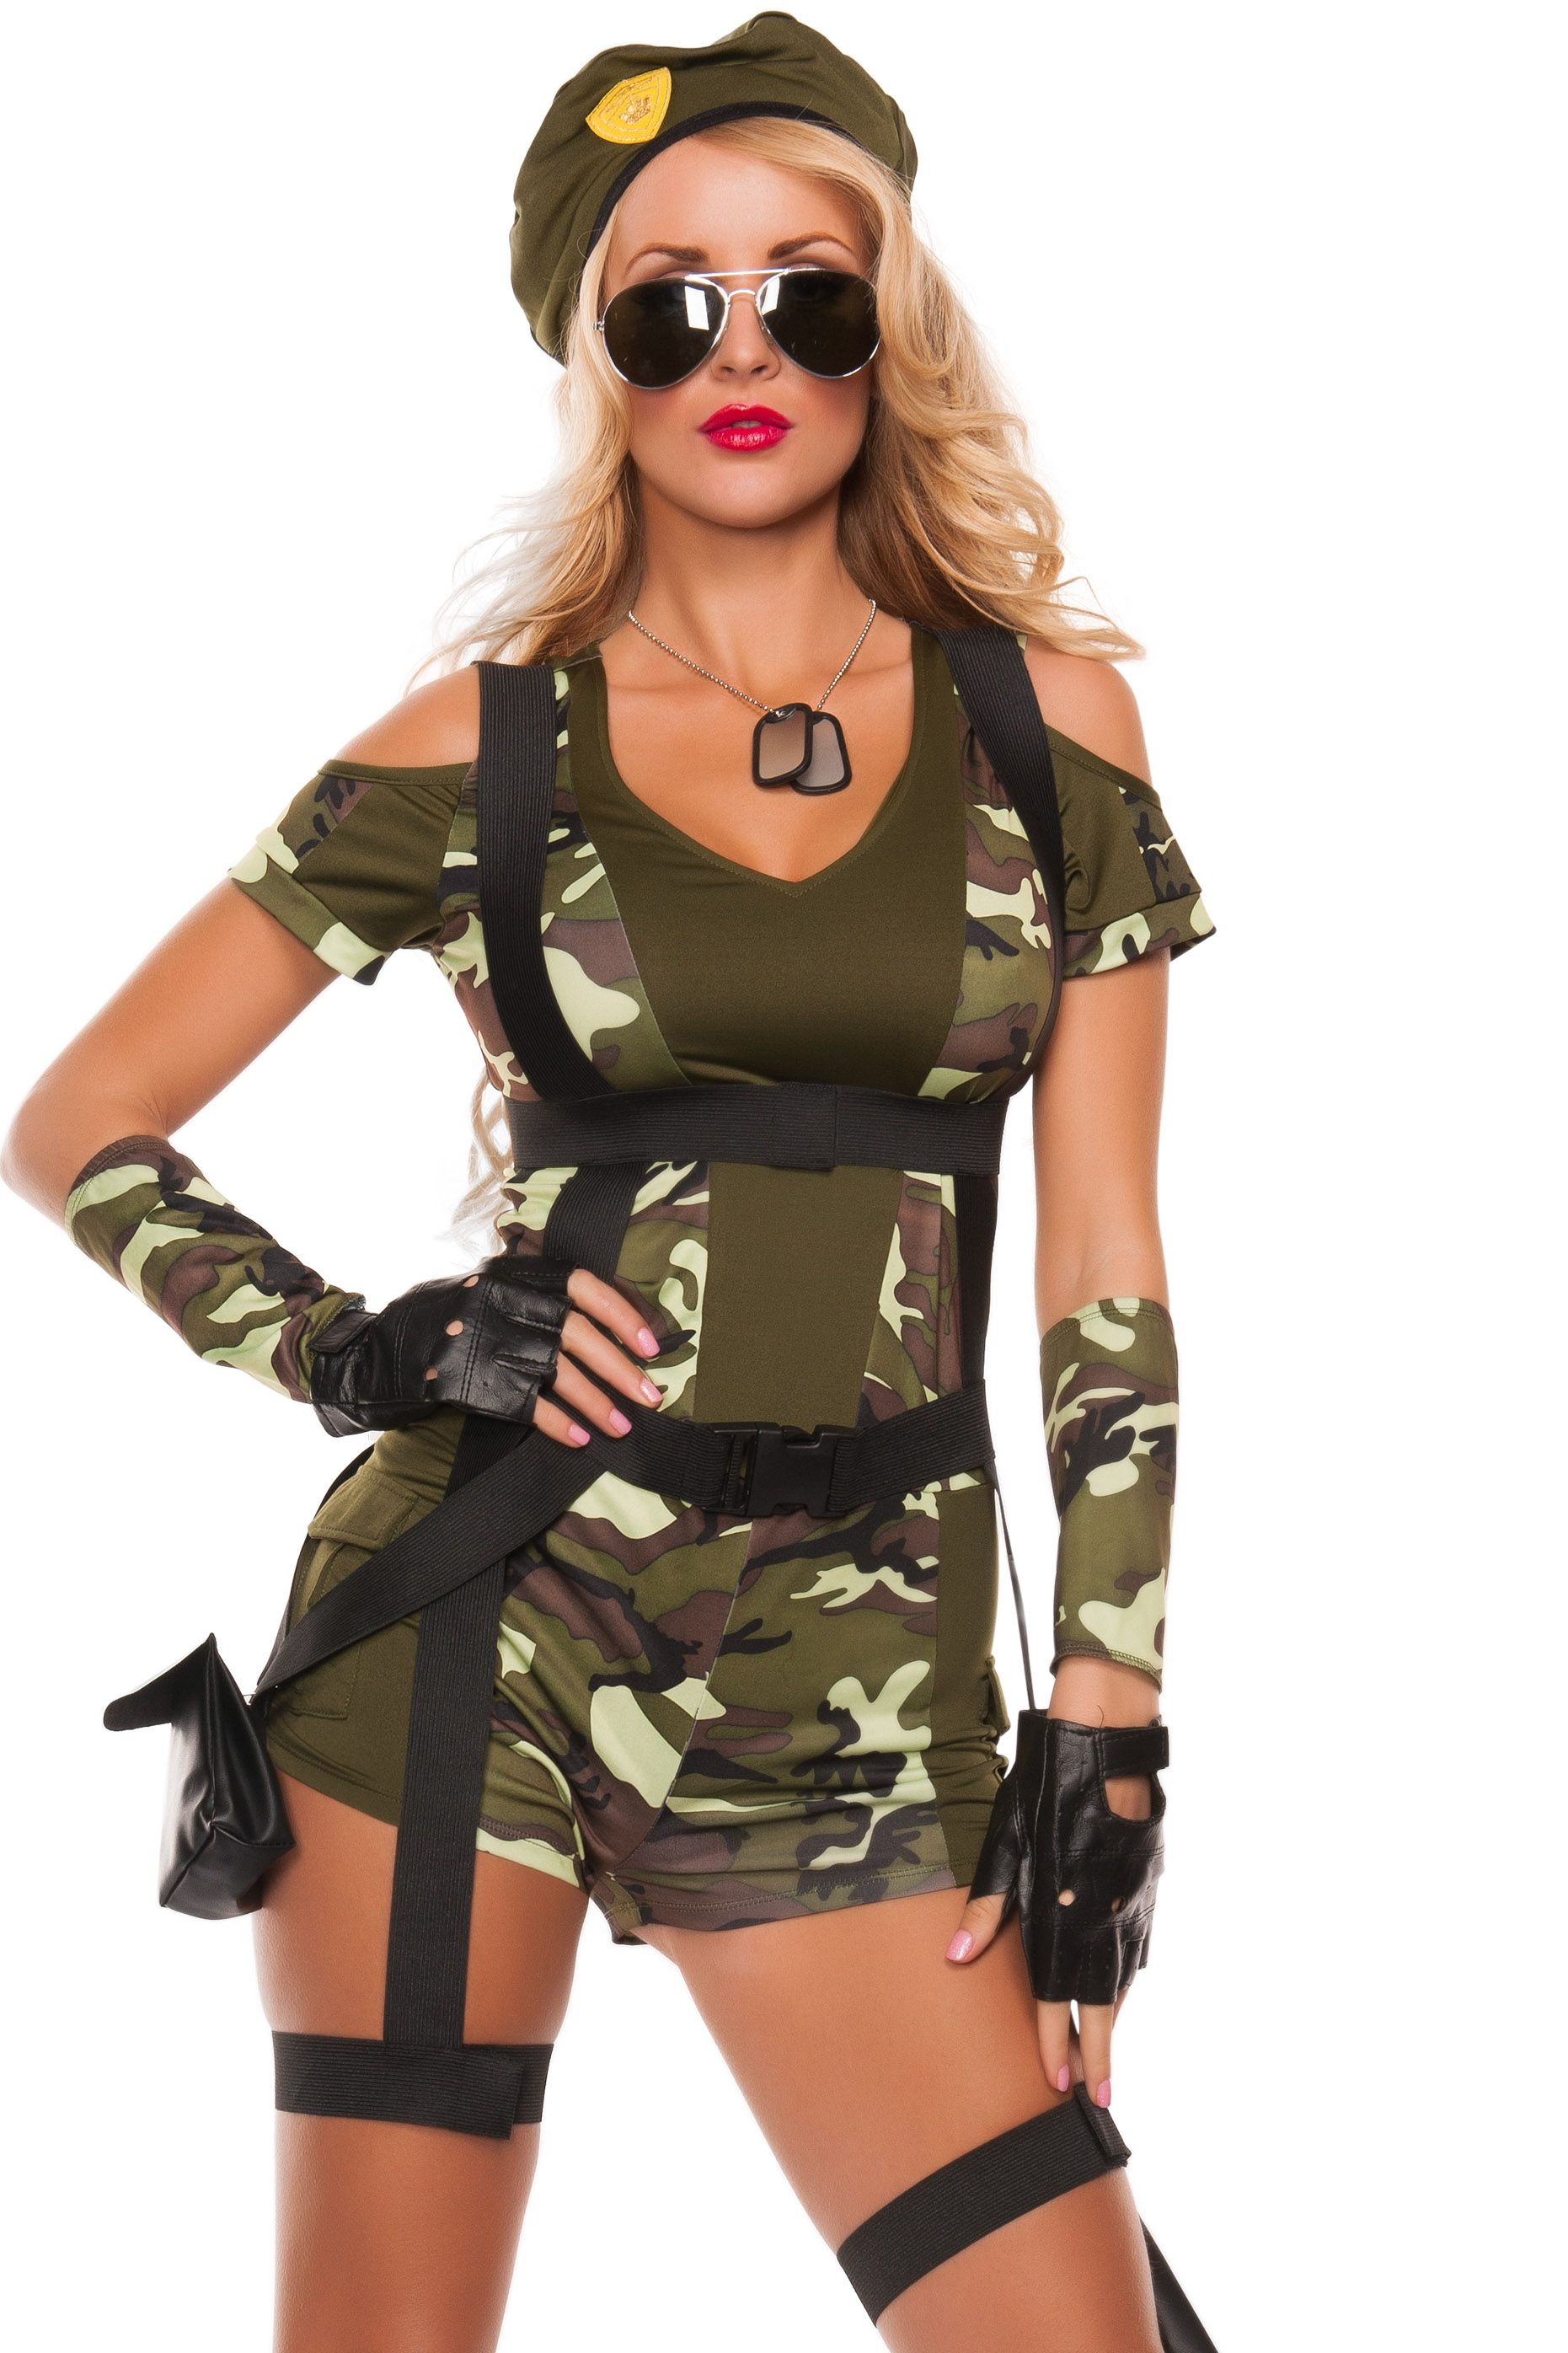 Shop for military costumes like this Green Beret Costume at ...